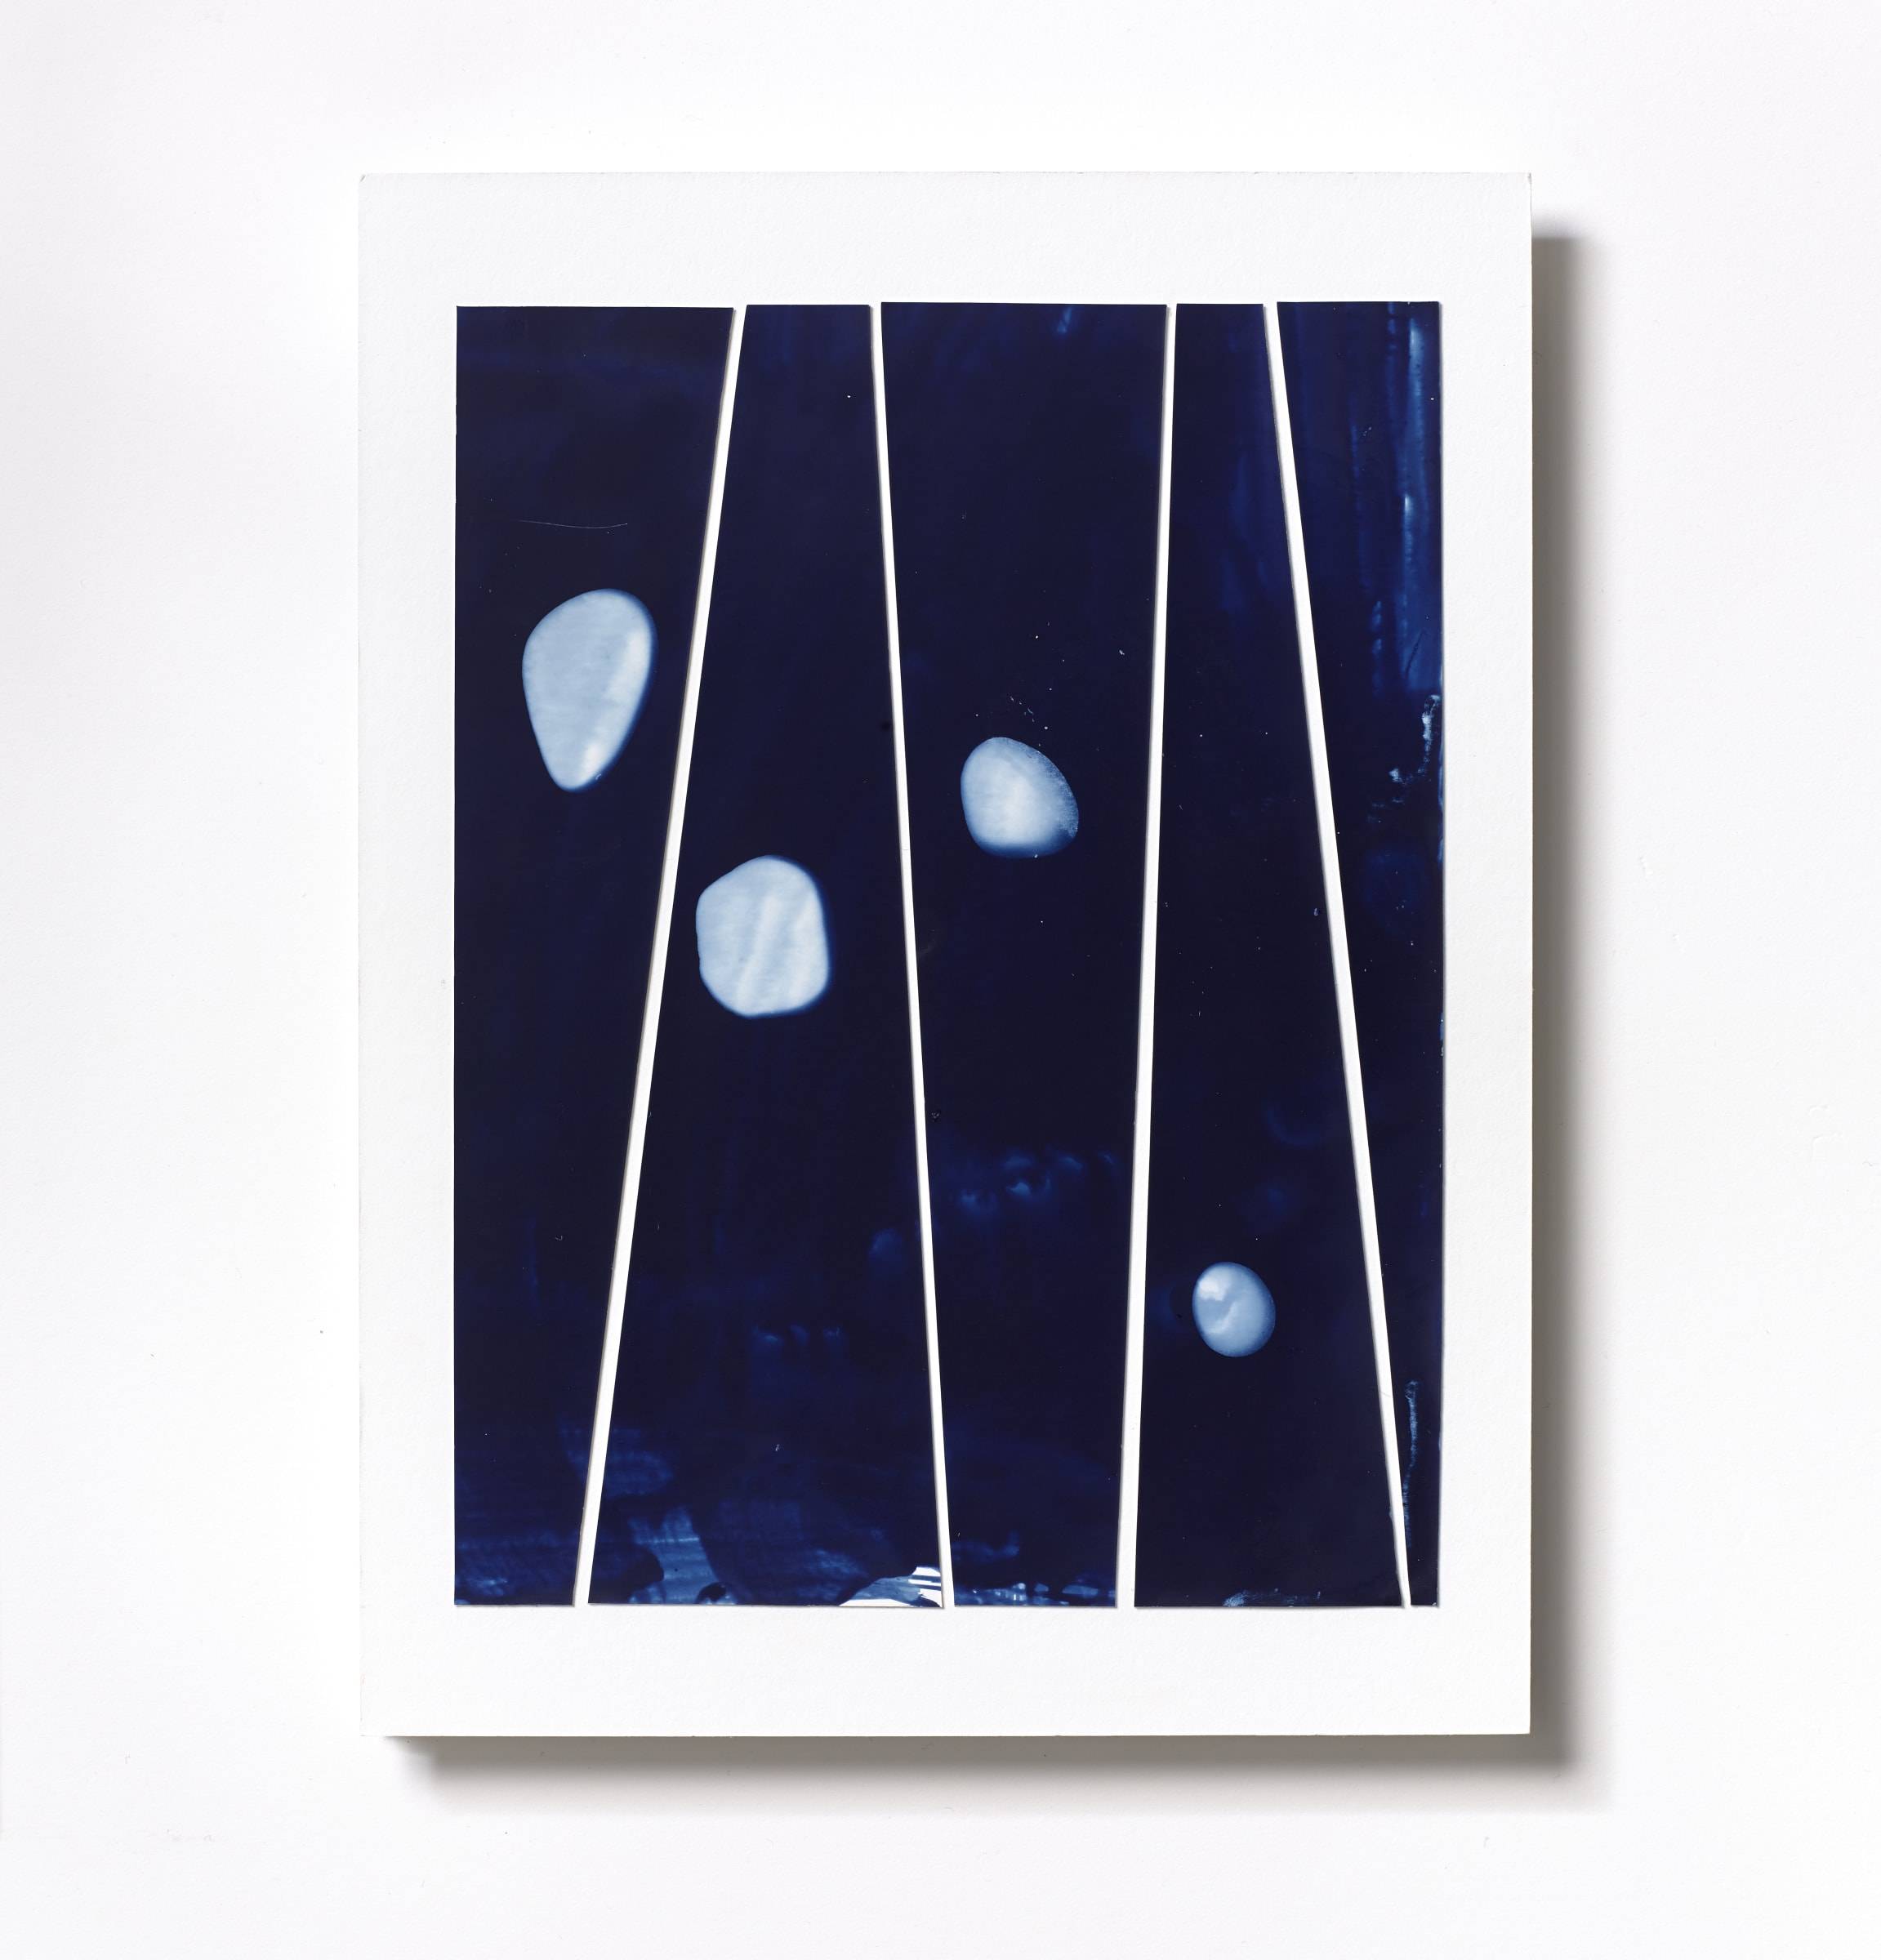 """<span class=""""link fancybox-details-link""""><a href=""""/content/feature/218/artworks559/"""">View Detail Page</a></span><div class=""""medium"""">Cyanotype Collage of five hand-painted 9 7/8"""" x 1/4"""" cyanotype photograms on a 12 x 9 inch 8-ply museum board.<br /> Print only<br /> Unique</div> <div class=""""dimensions"""">30.5 x 22.9 cm<br /> 12 x 9 in</div>"""